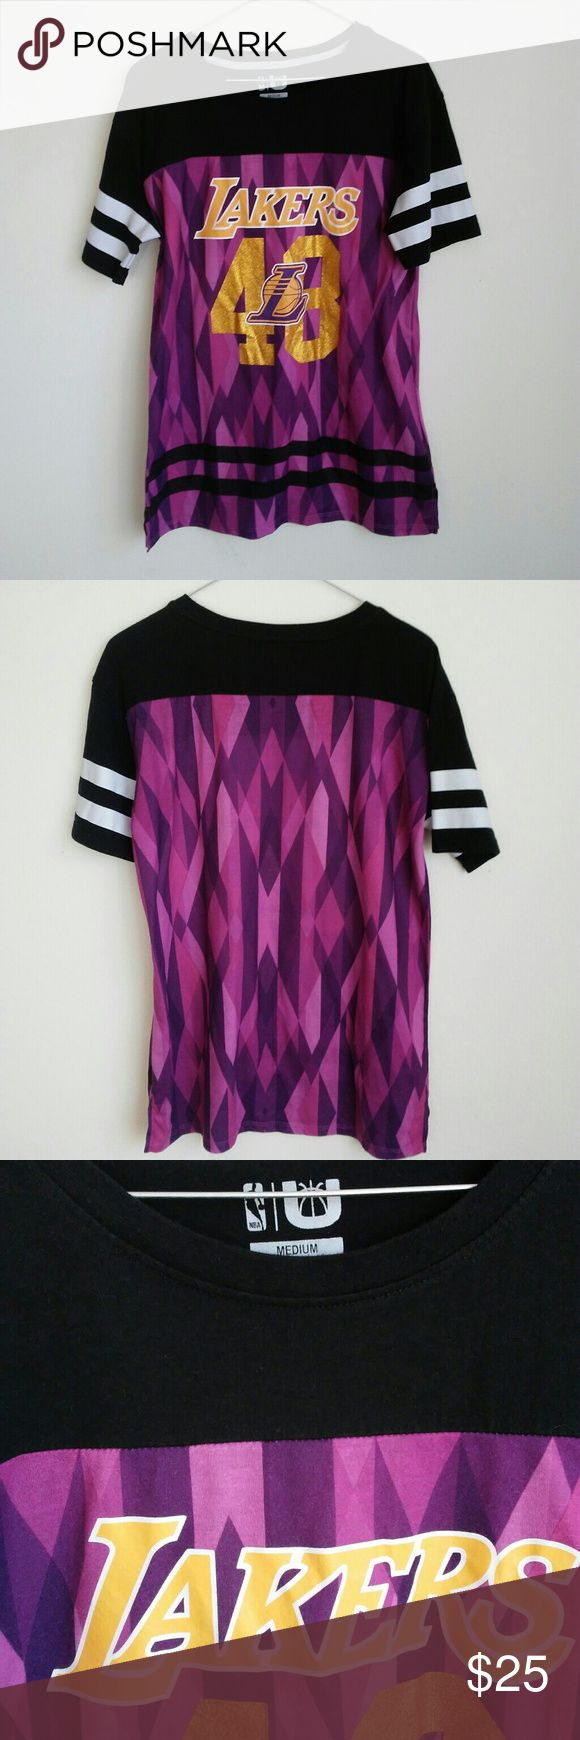 Lakers Shirt Purple Black White Stripes Perfect for the Lakers fan. Pre owned. No trades. Tops Tees - Short Sleeve